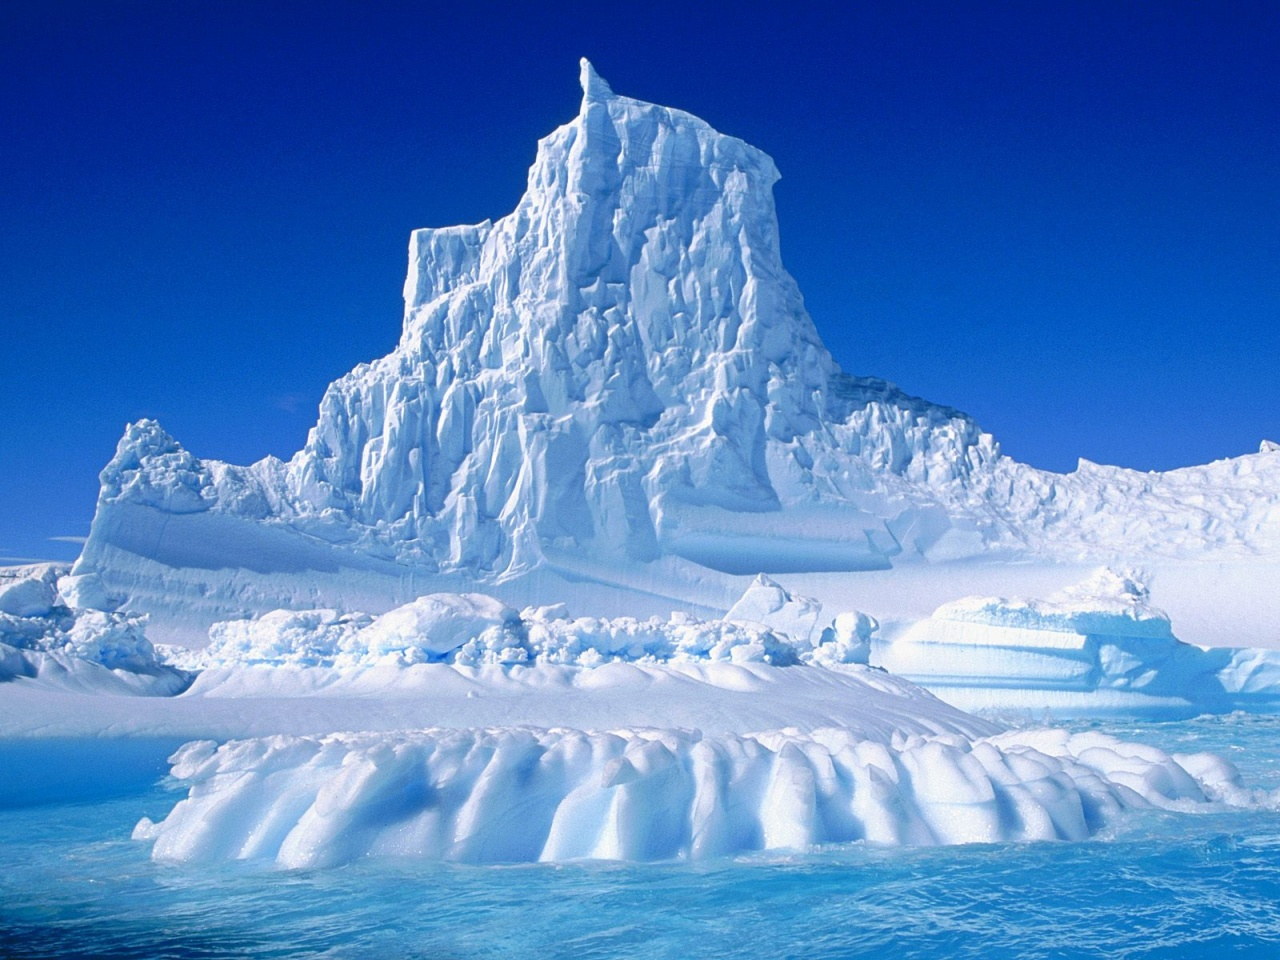 1280x960 Eroded iceberg desktop PC and Mac wallpaper